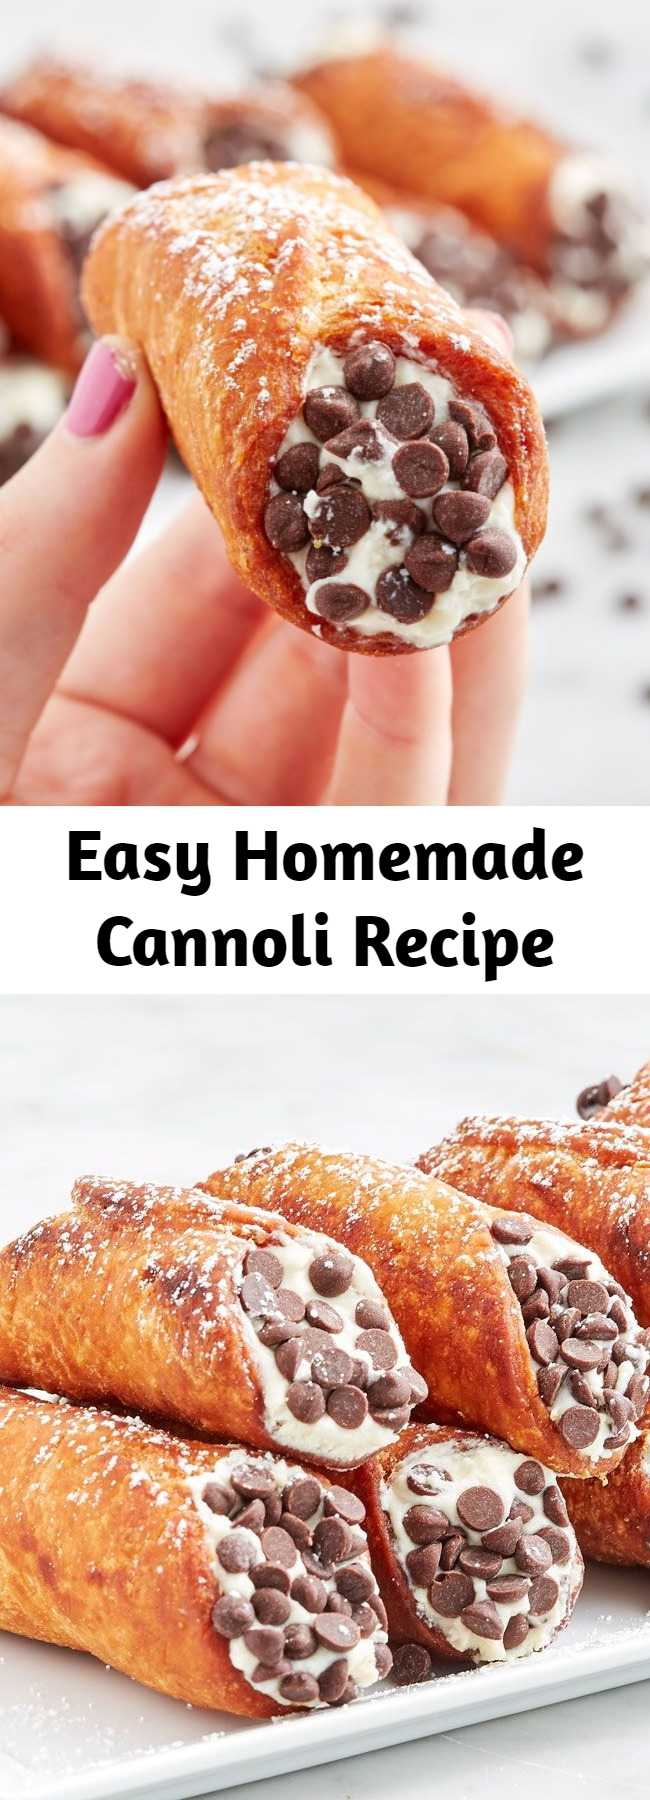 Easy Homemade Cannoli Recipe - The crispy shell and creamy sweet filling are nearly irresistible. Often times, they come with mini chocolate chips or chopped pistachios or dipped in chocolate. No matter what topping you pick, they're a MAJOR treat.